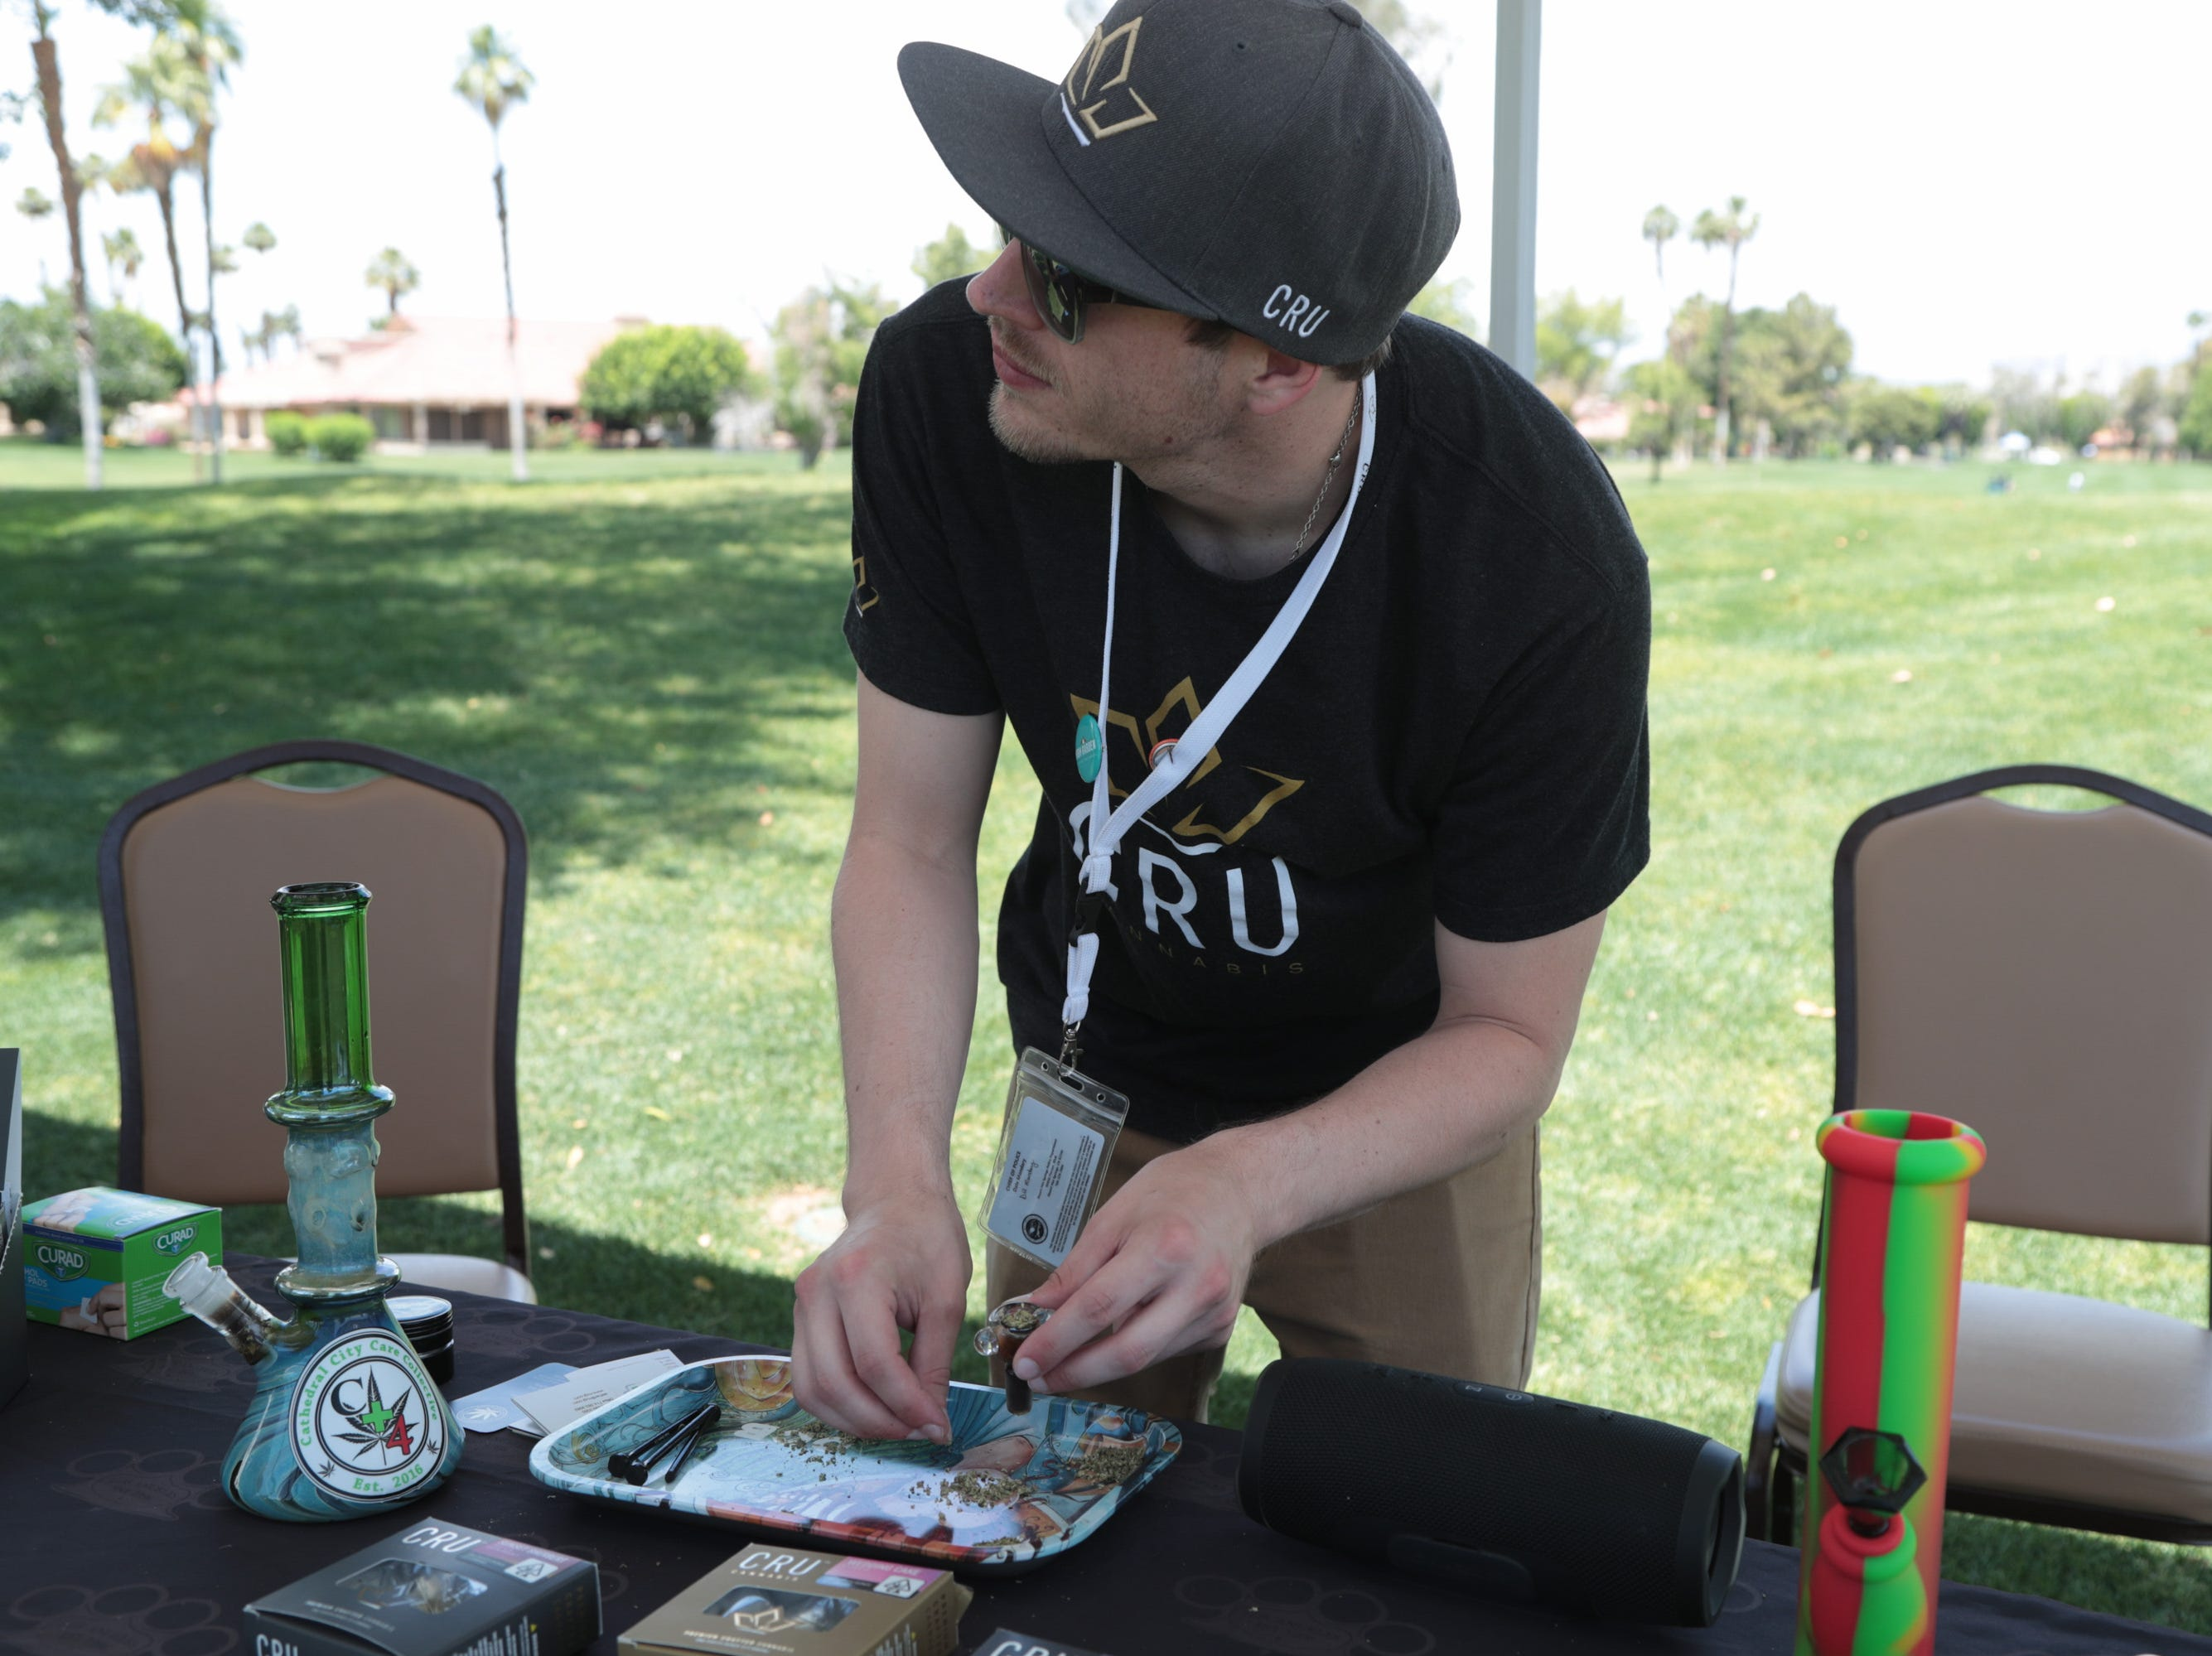 Ryan Pasos from Cru Cannabis packs a bowl for a golfer at the Coachella Valley Cannabis Alliance Network's charity golf tournament, Palm Desert, Calif., May 11, 2019.